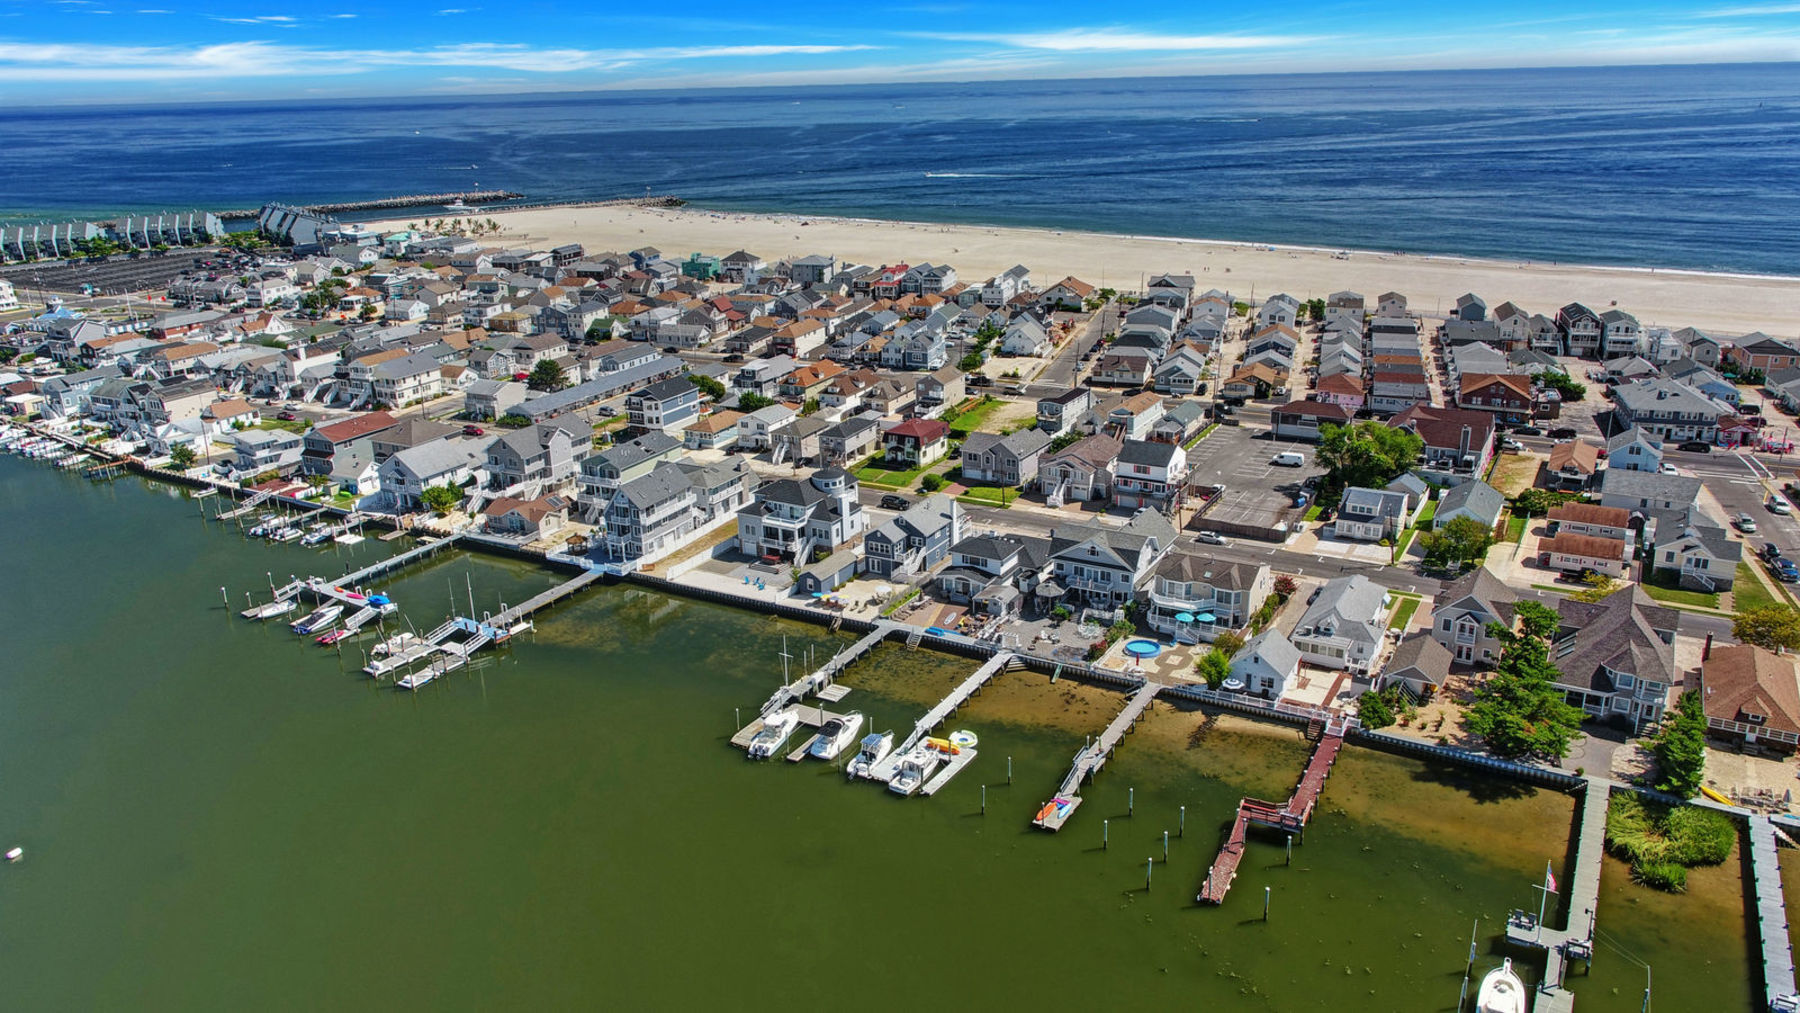 Single Family Home for Sale at Waterfront Property 203 Randall Avenue, Point Pleasant Beach, New Jersey 08742 United States